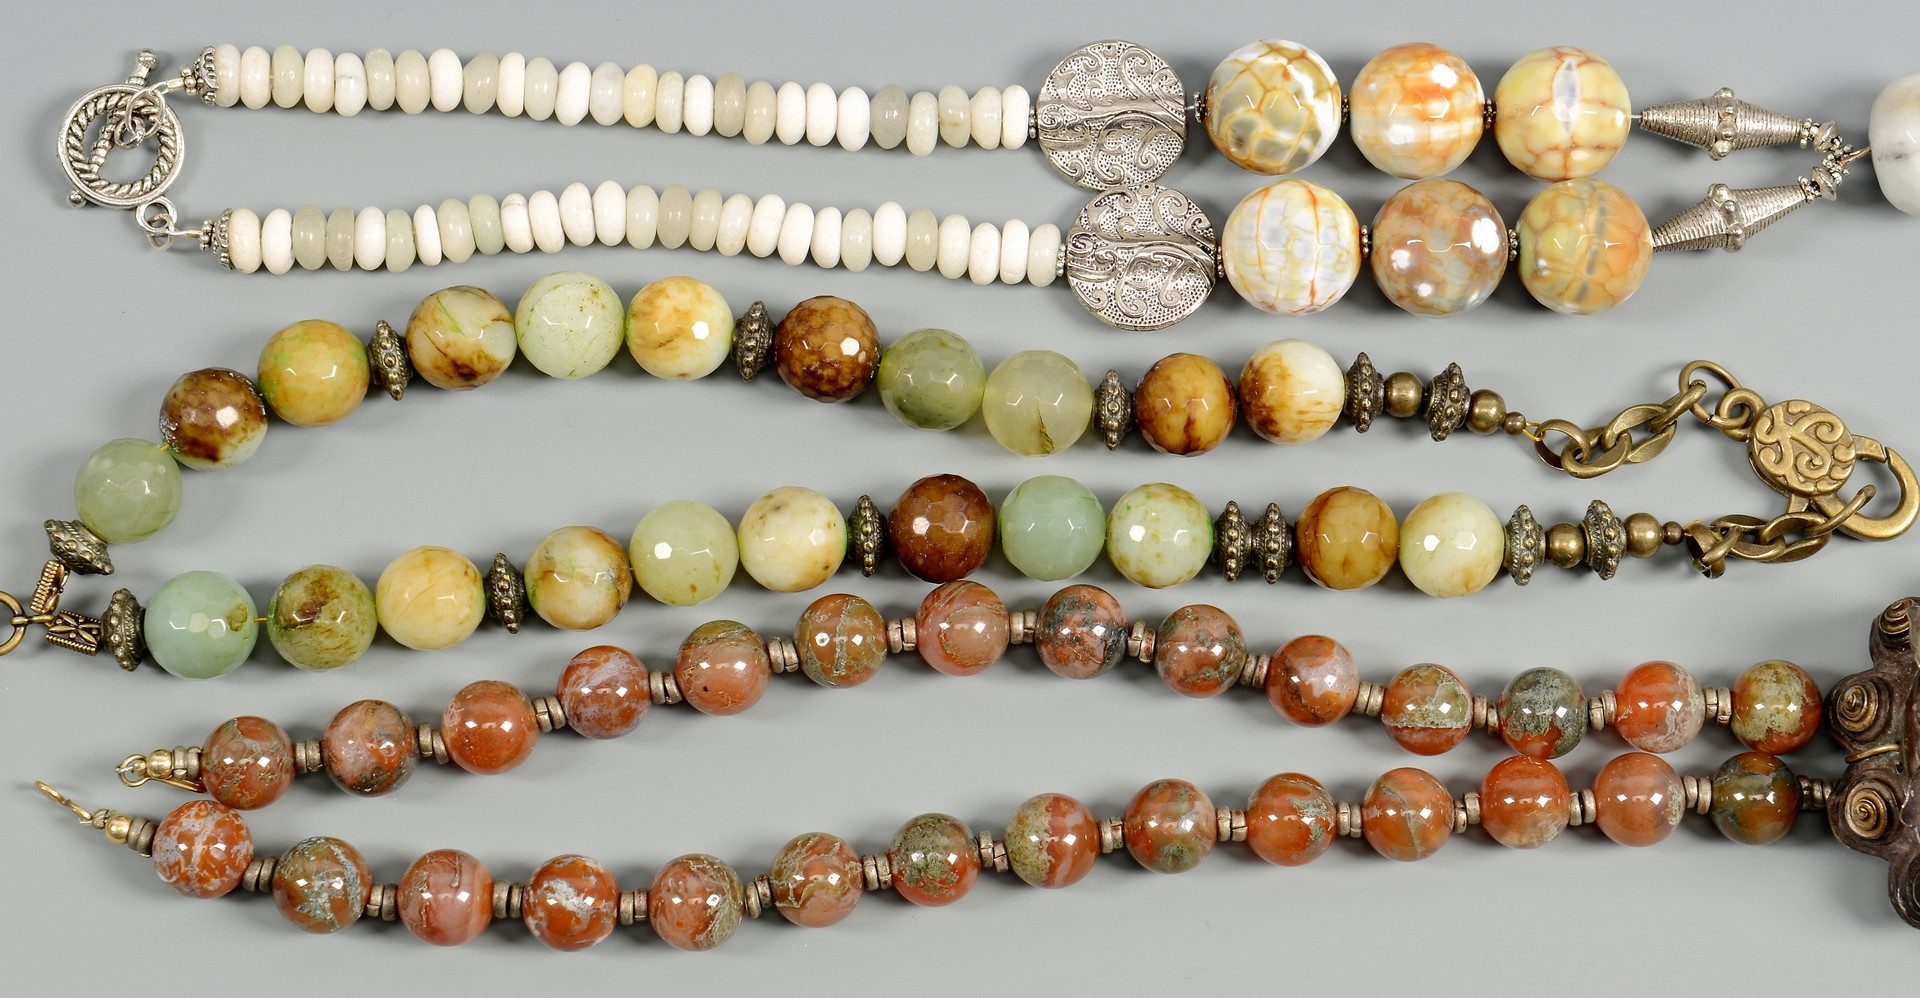 Lot 3832378: 3 Chinese Archaic Style Necklaces